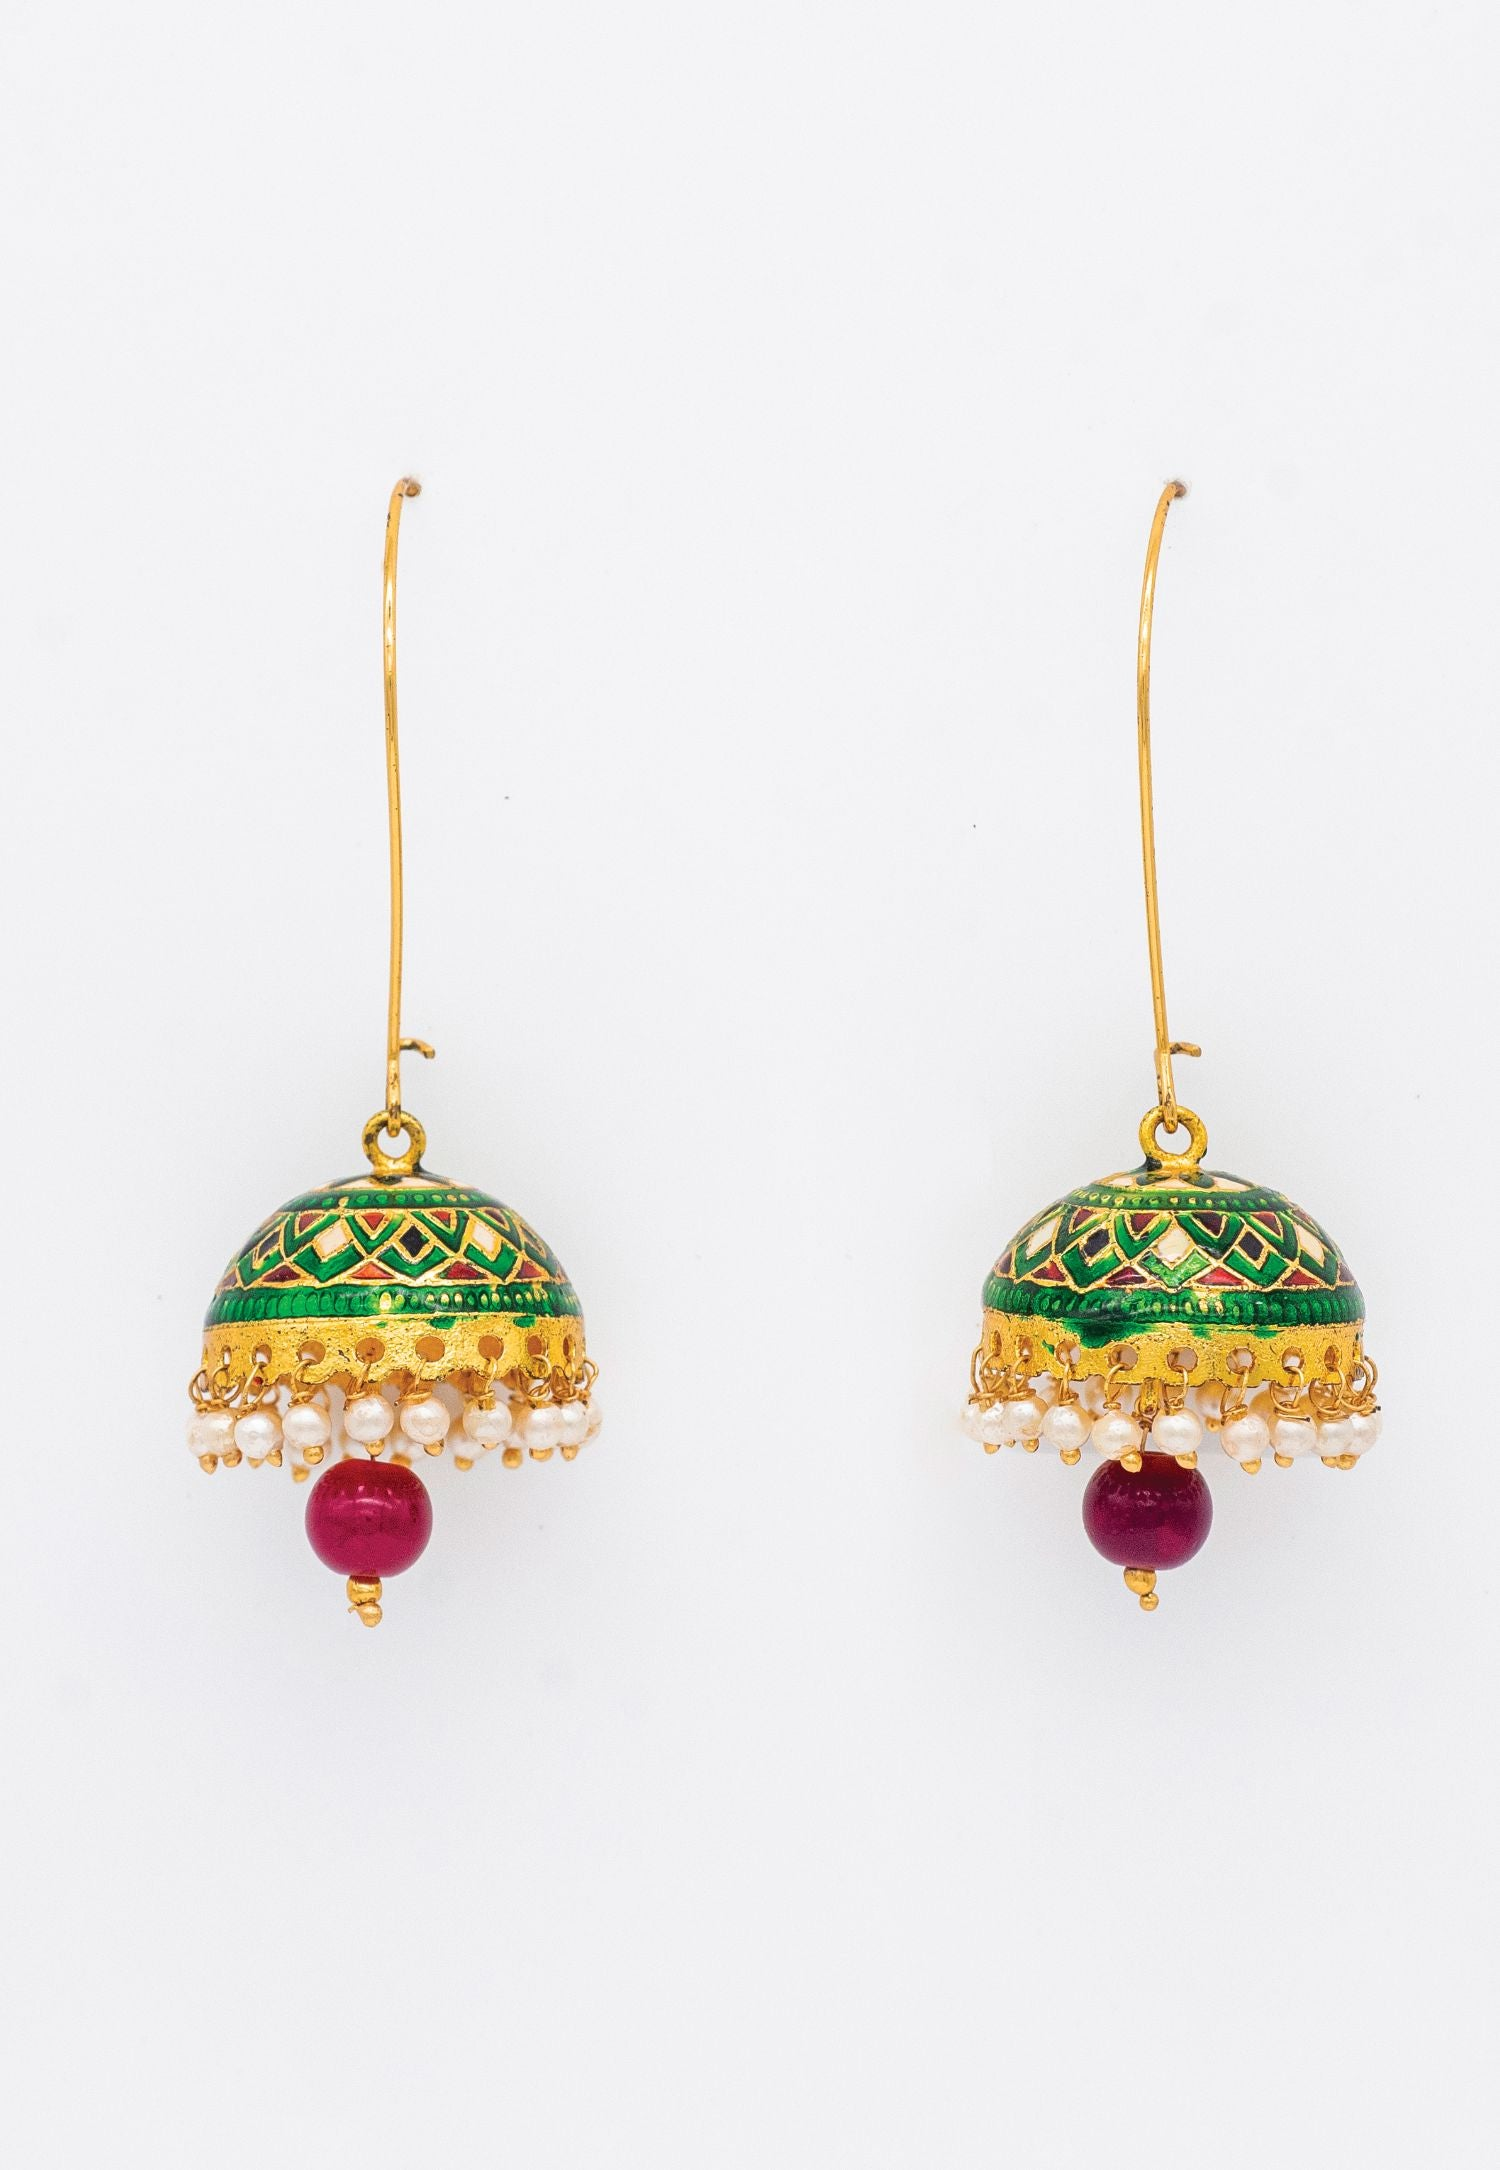 GREEN AND RED MEENAKARI HANGING EARRINGS WITH PEARL DROP